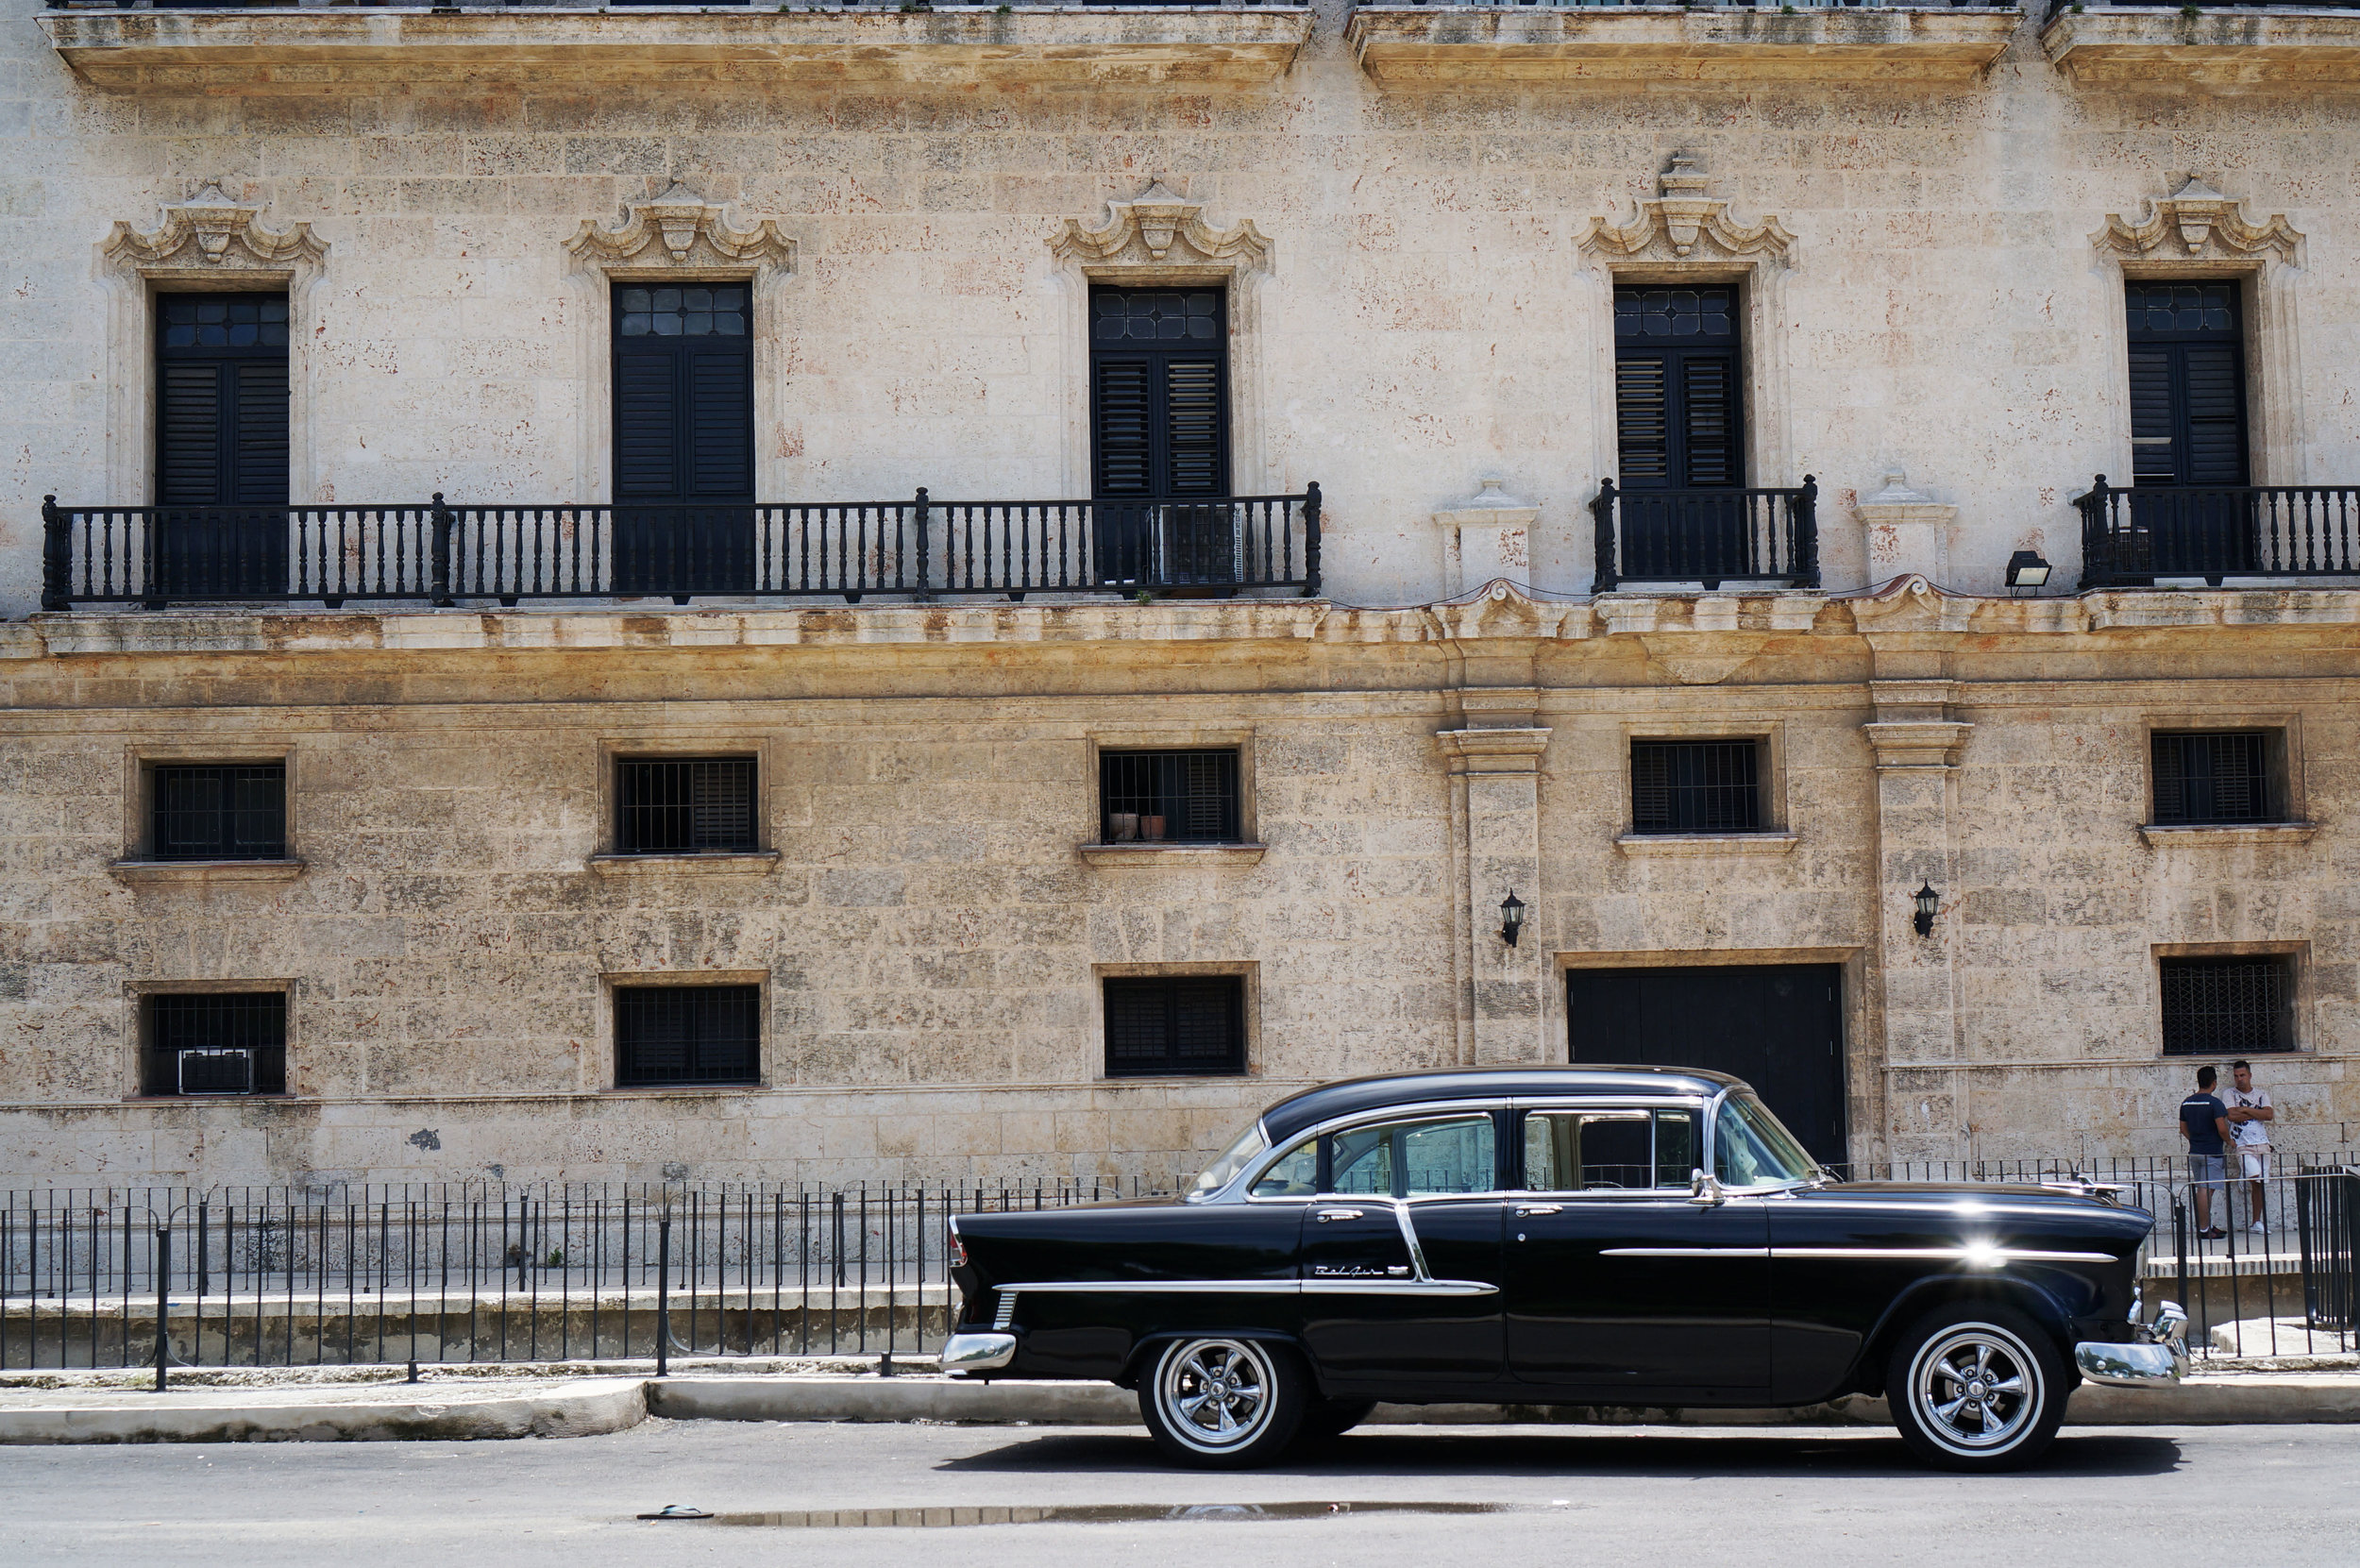 Perpetuating the superficial identity of Havana - but golly it was so perfectly photogenic.